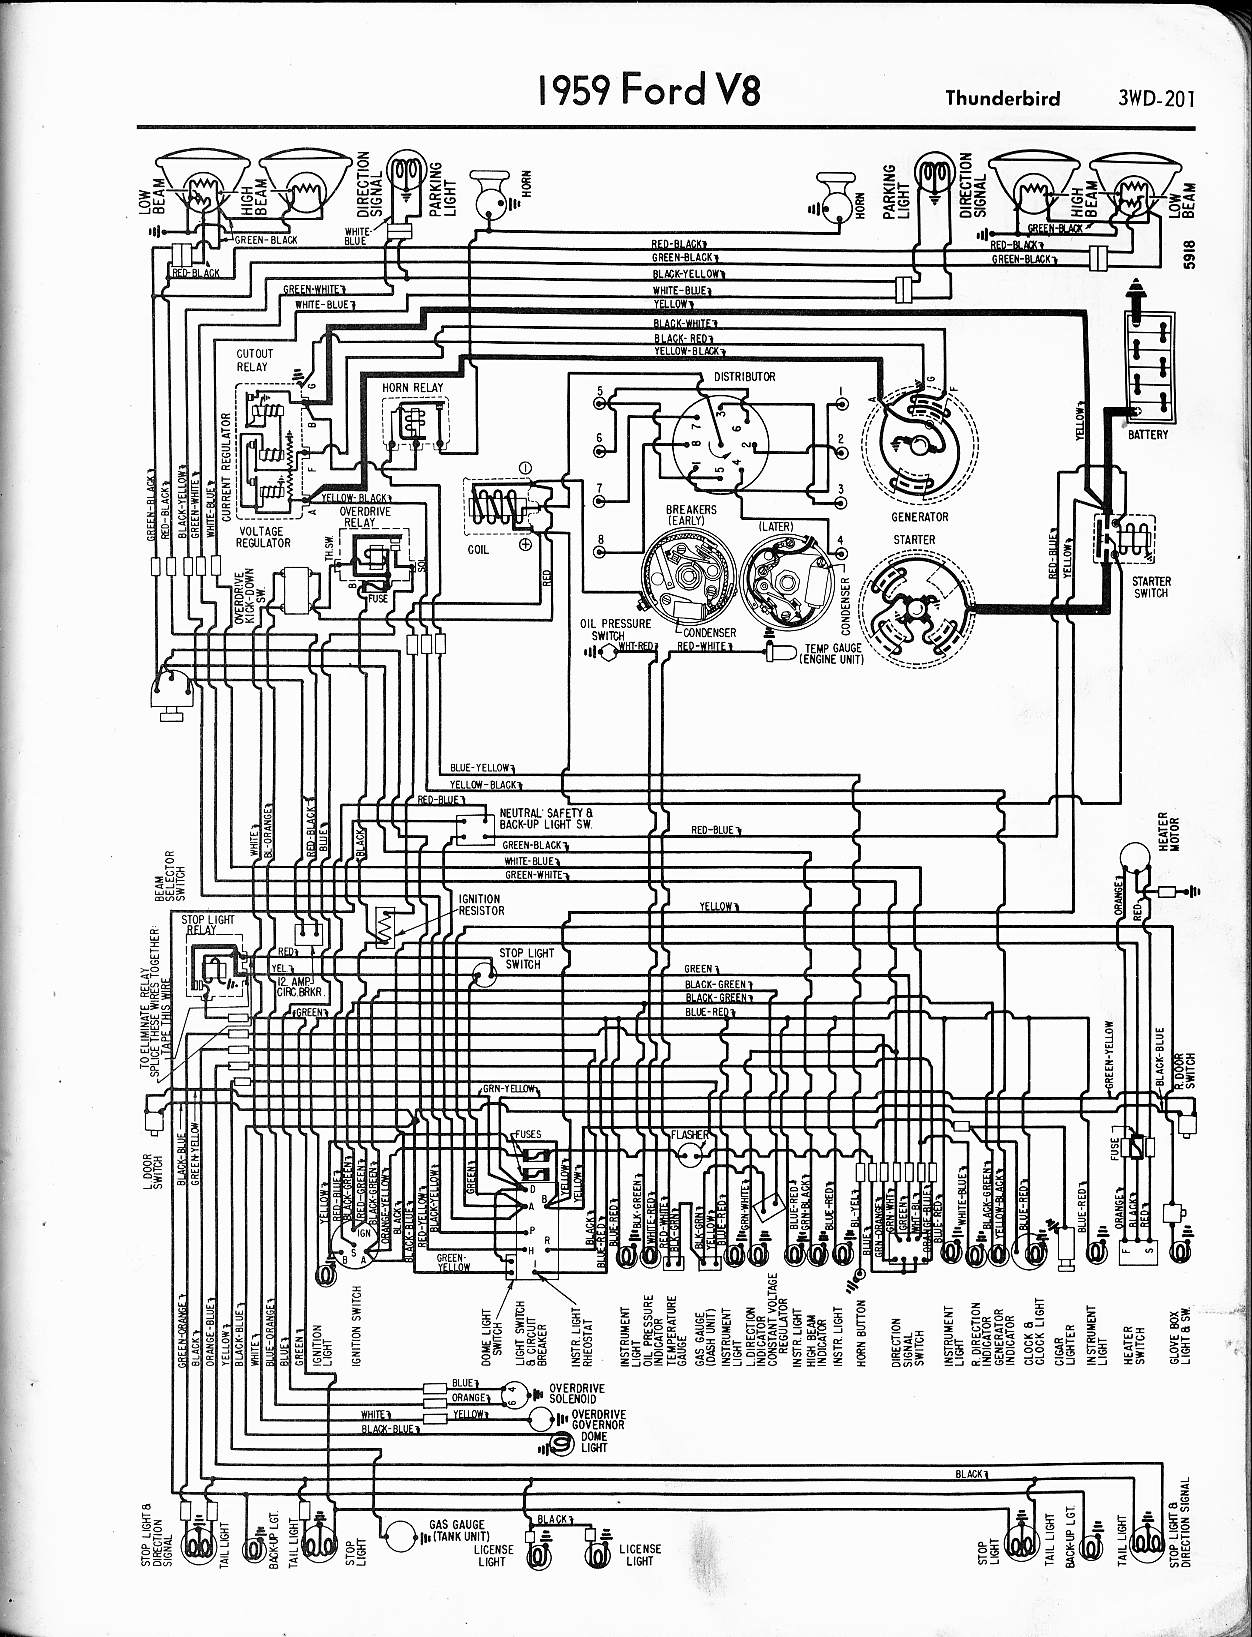 MWire5765 201 1960 ford wiring diagram 1960 ford f100 wiring diagram \u2022 wiring 1955 plymouth wiring diagram at nearapp.co